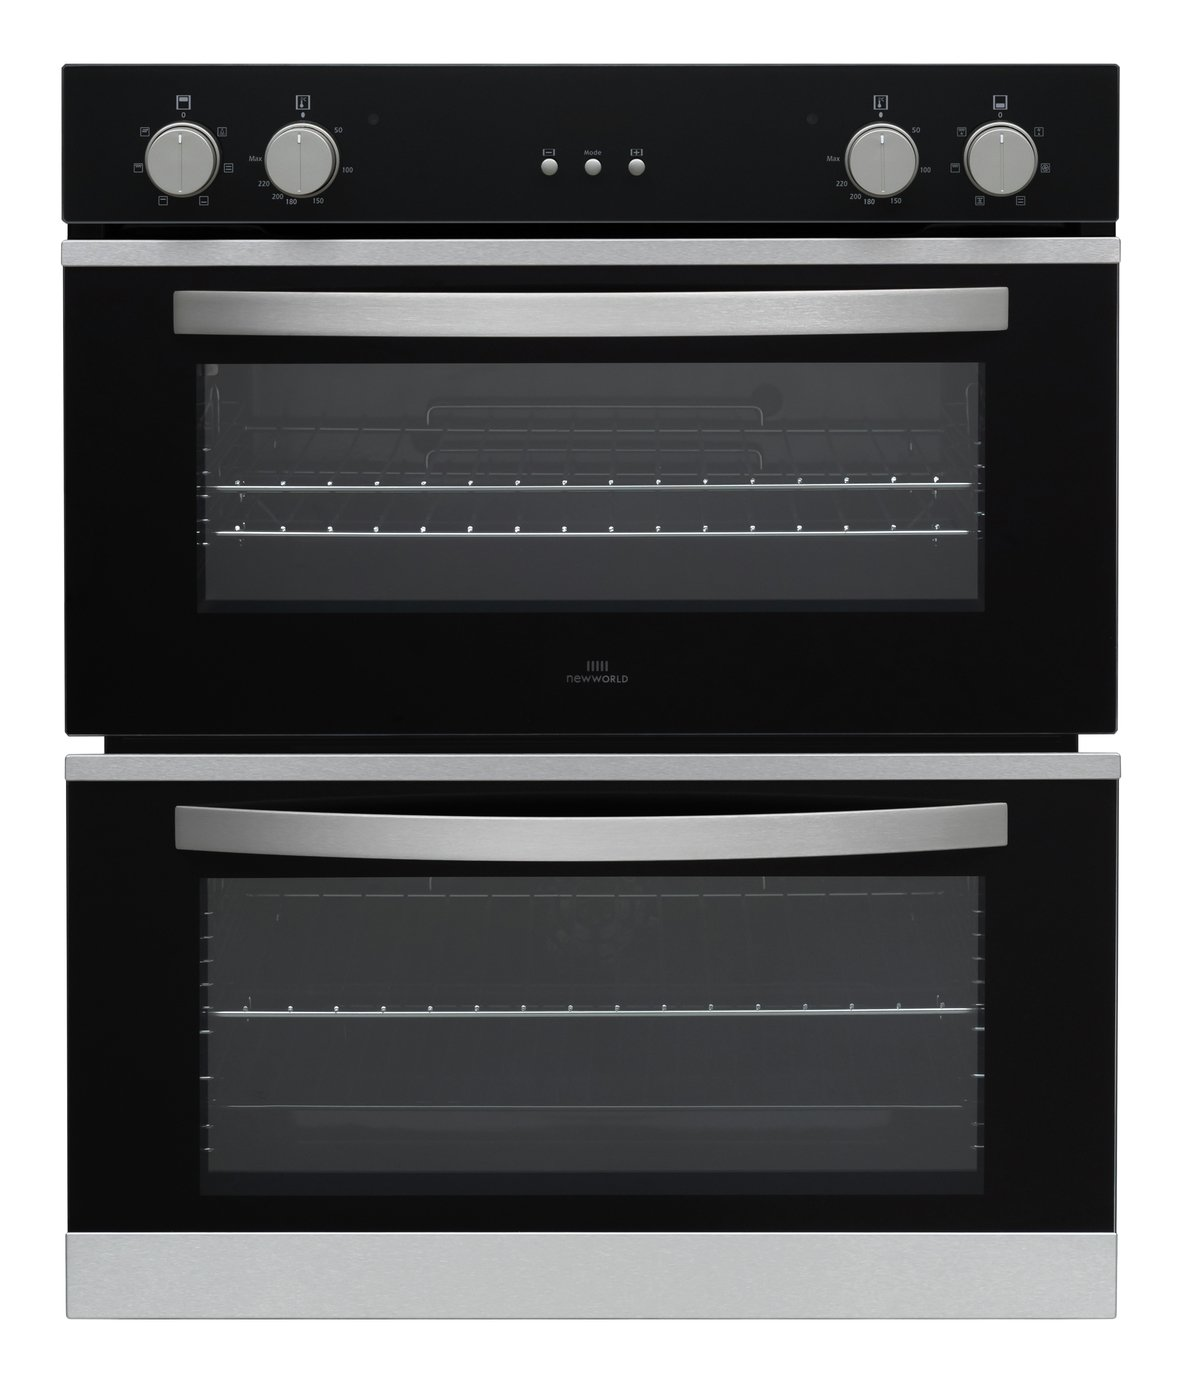 New World NWCMBUOB Built Under Double Electric Oven - Black